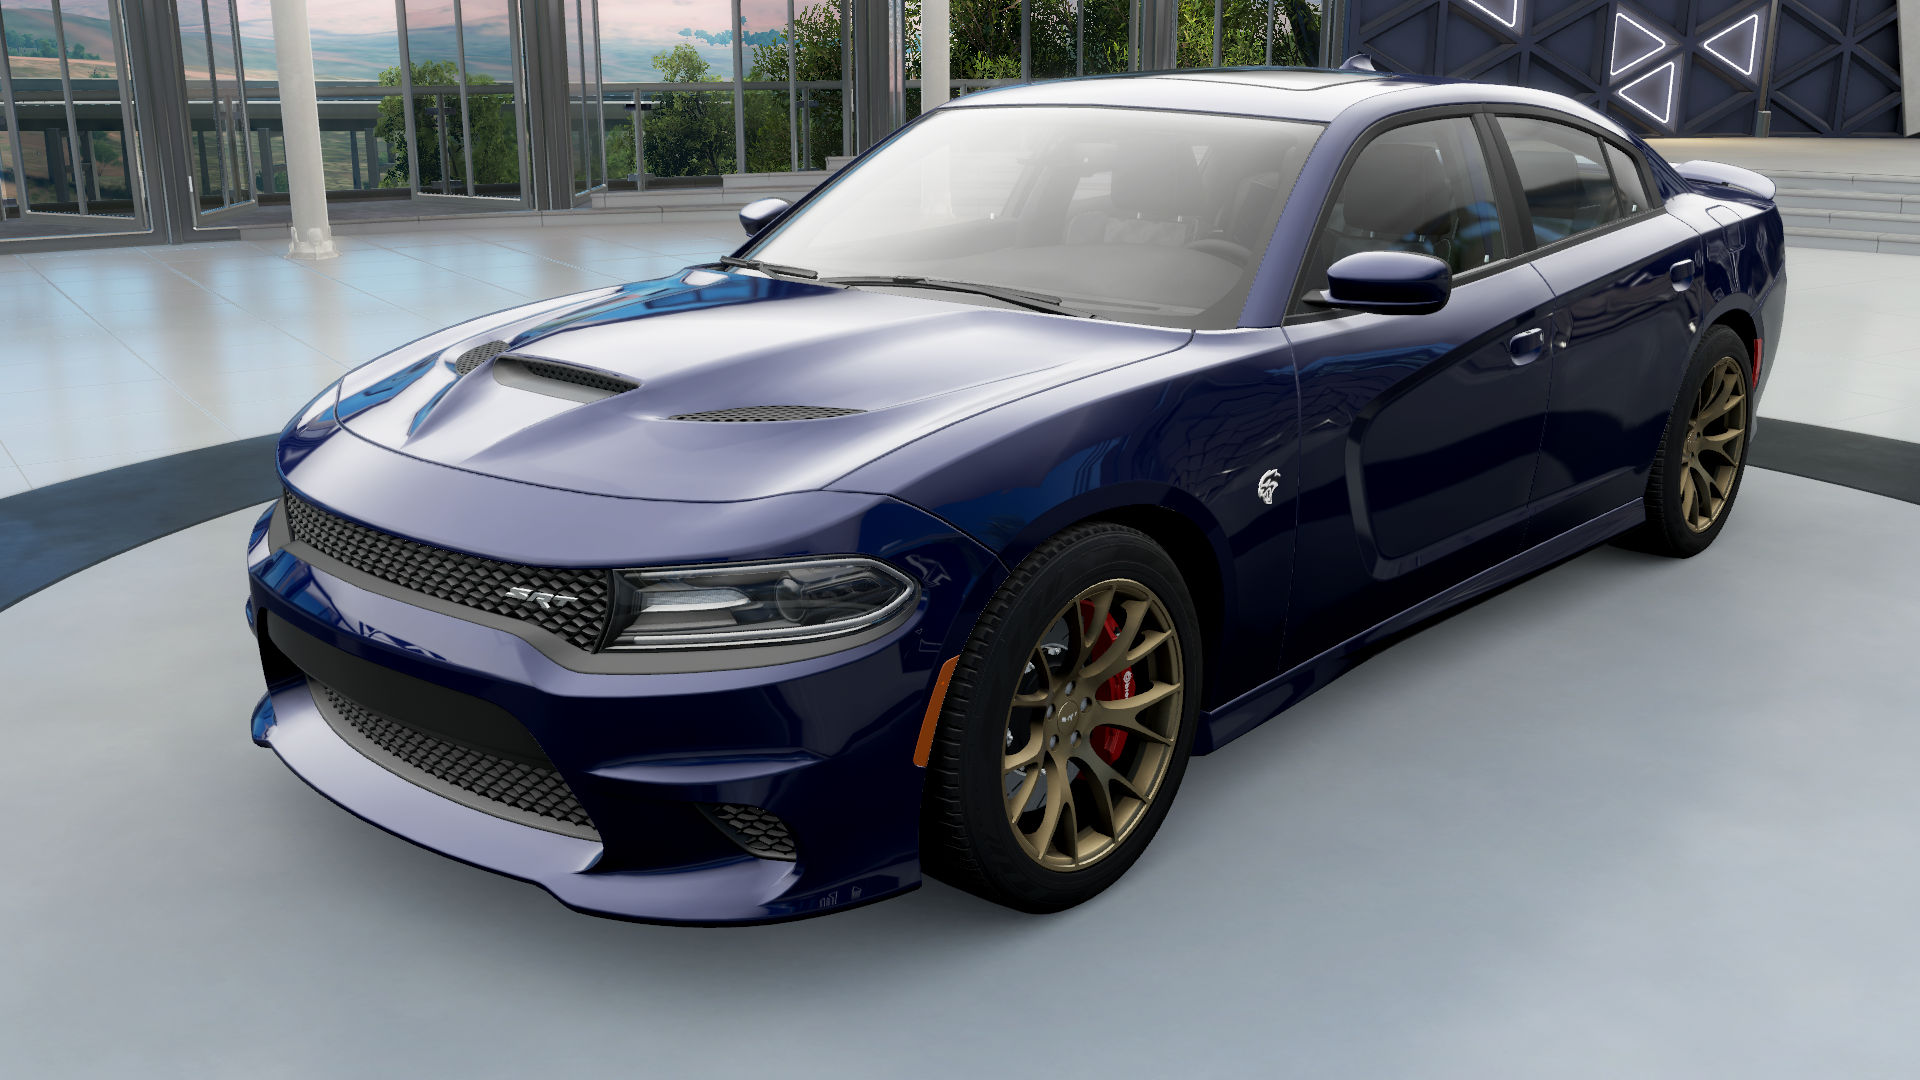 Dodge Charger Srt Hellcat Cool Powered By A L V Engine